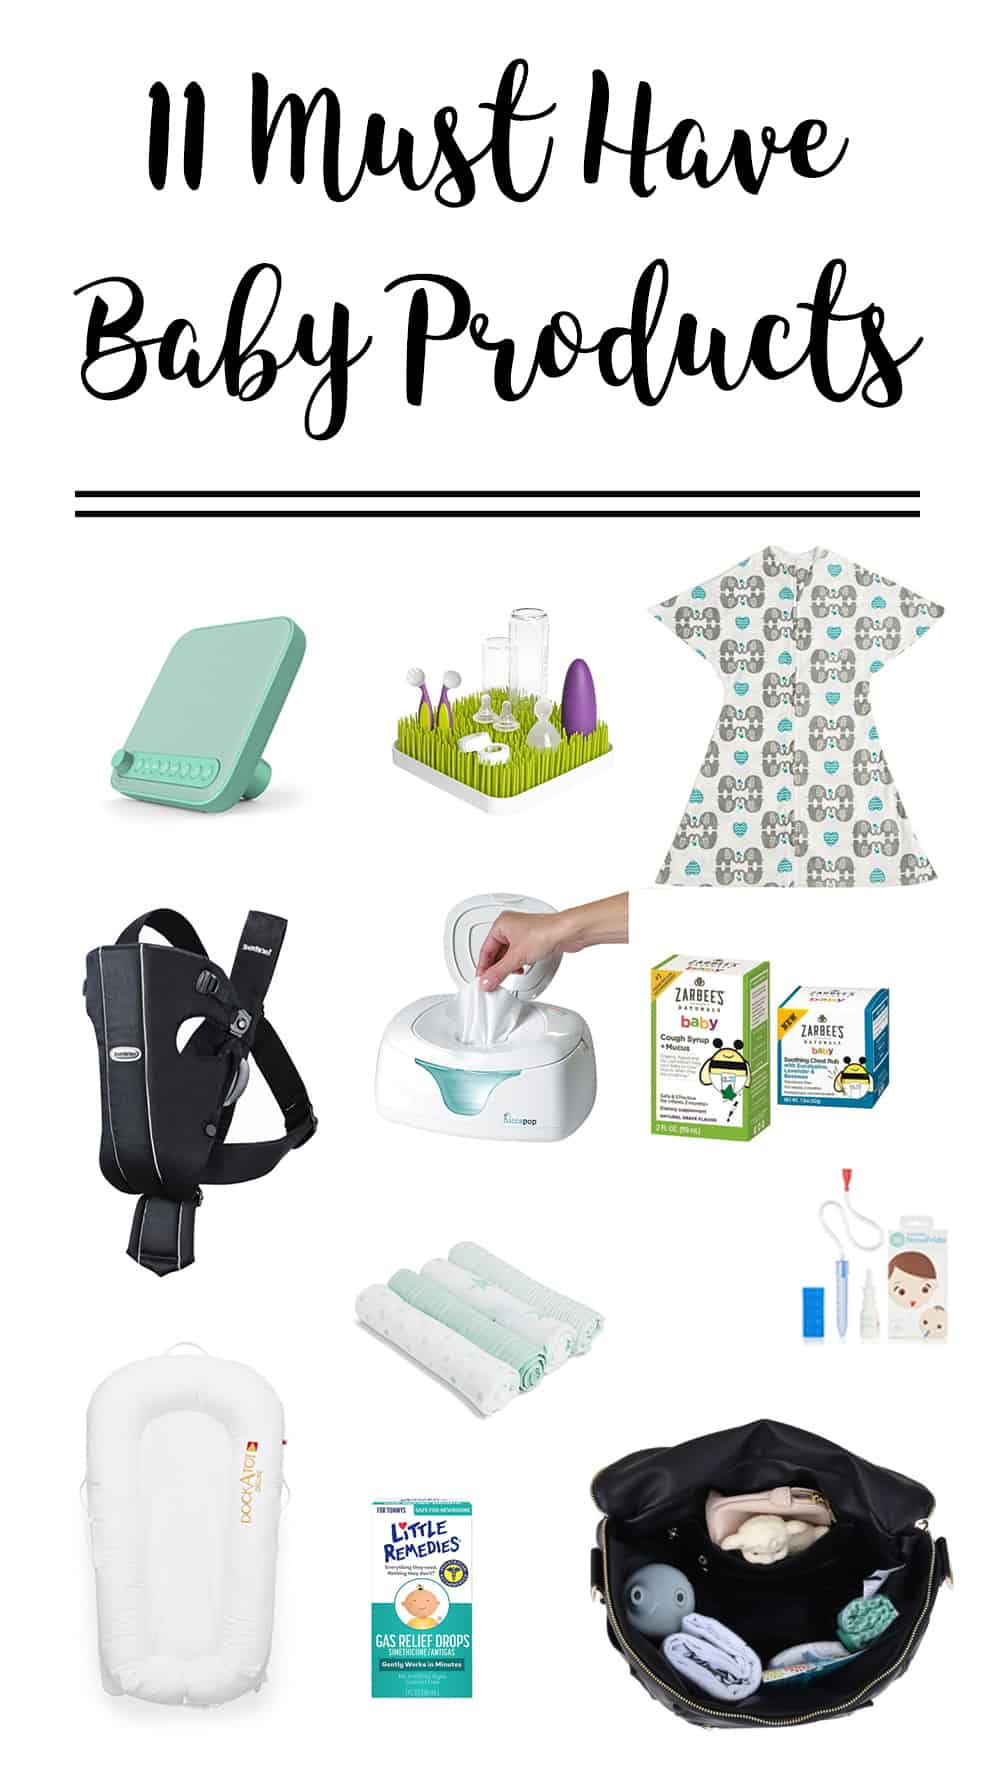 You don't need much to take care of a little one, but after four kids these 11 things are my own personal must have baby products. They make life so much easier!